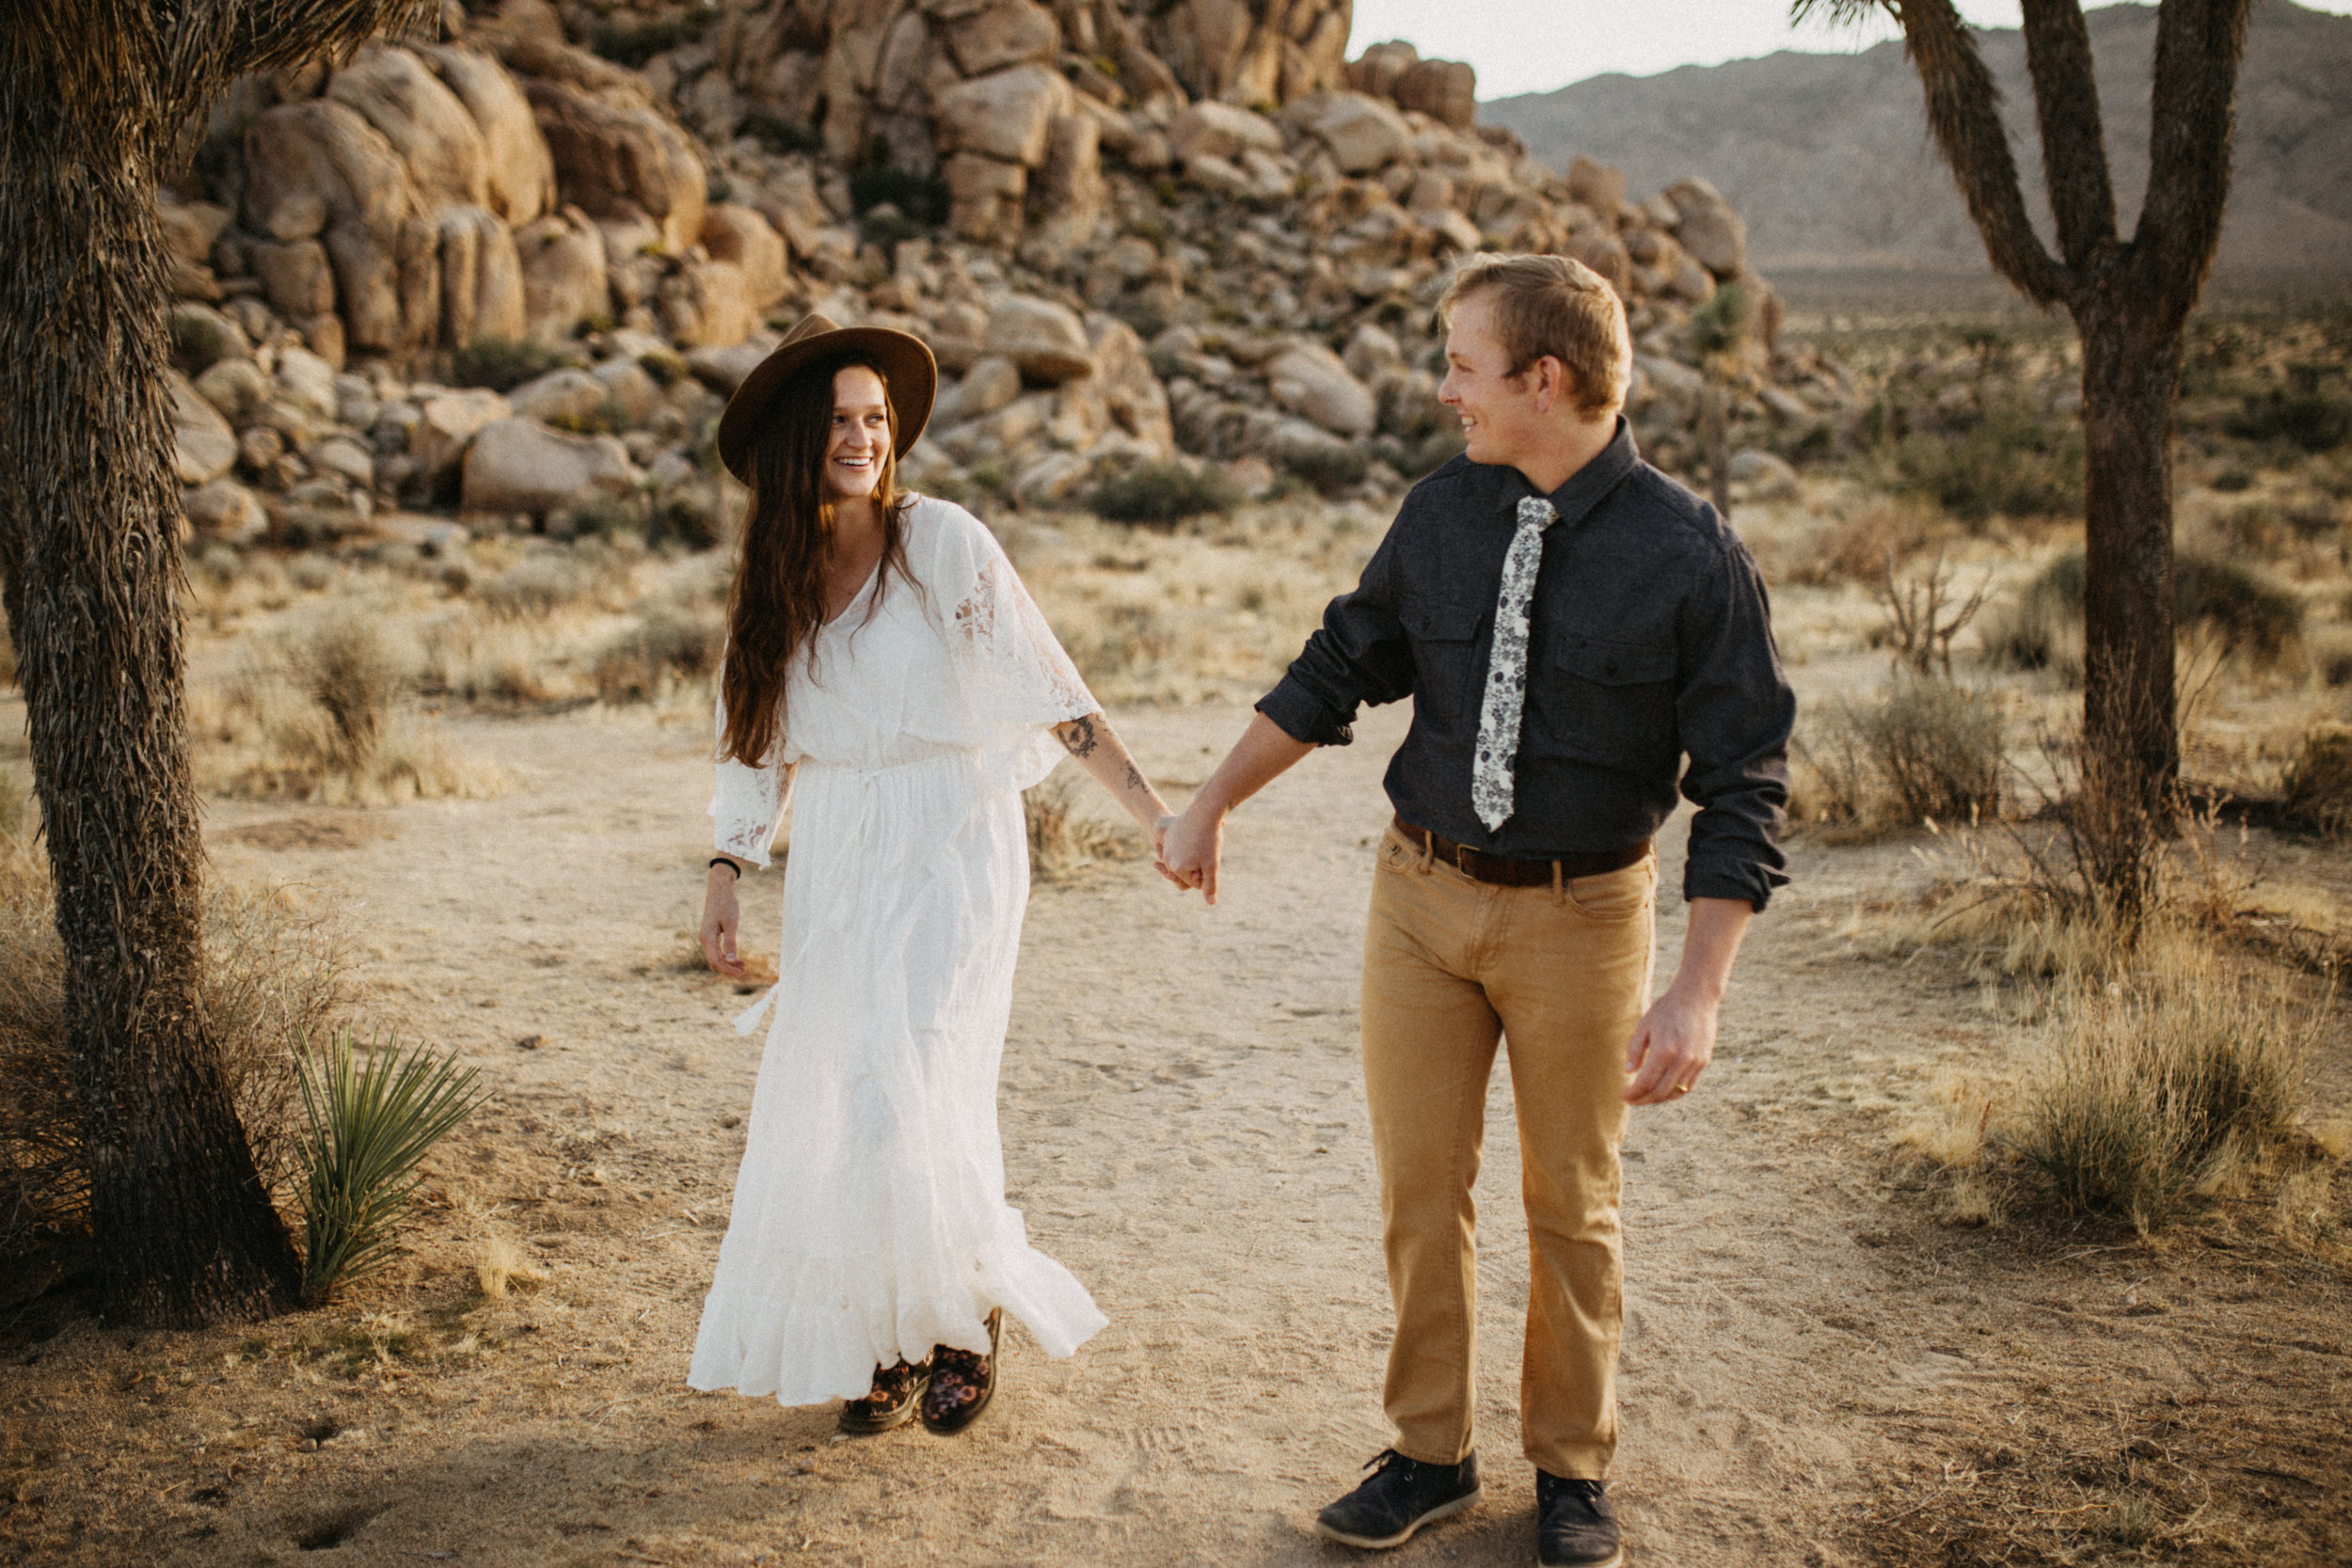 Joshua Tree National Park Adventure Couples Session Photographer Payton Marie Photography-10.jpg